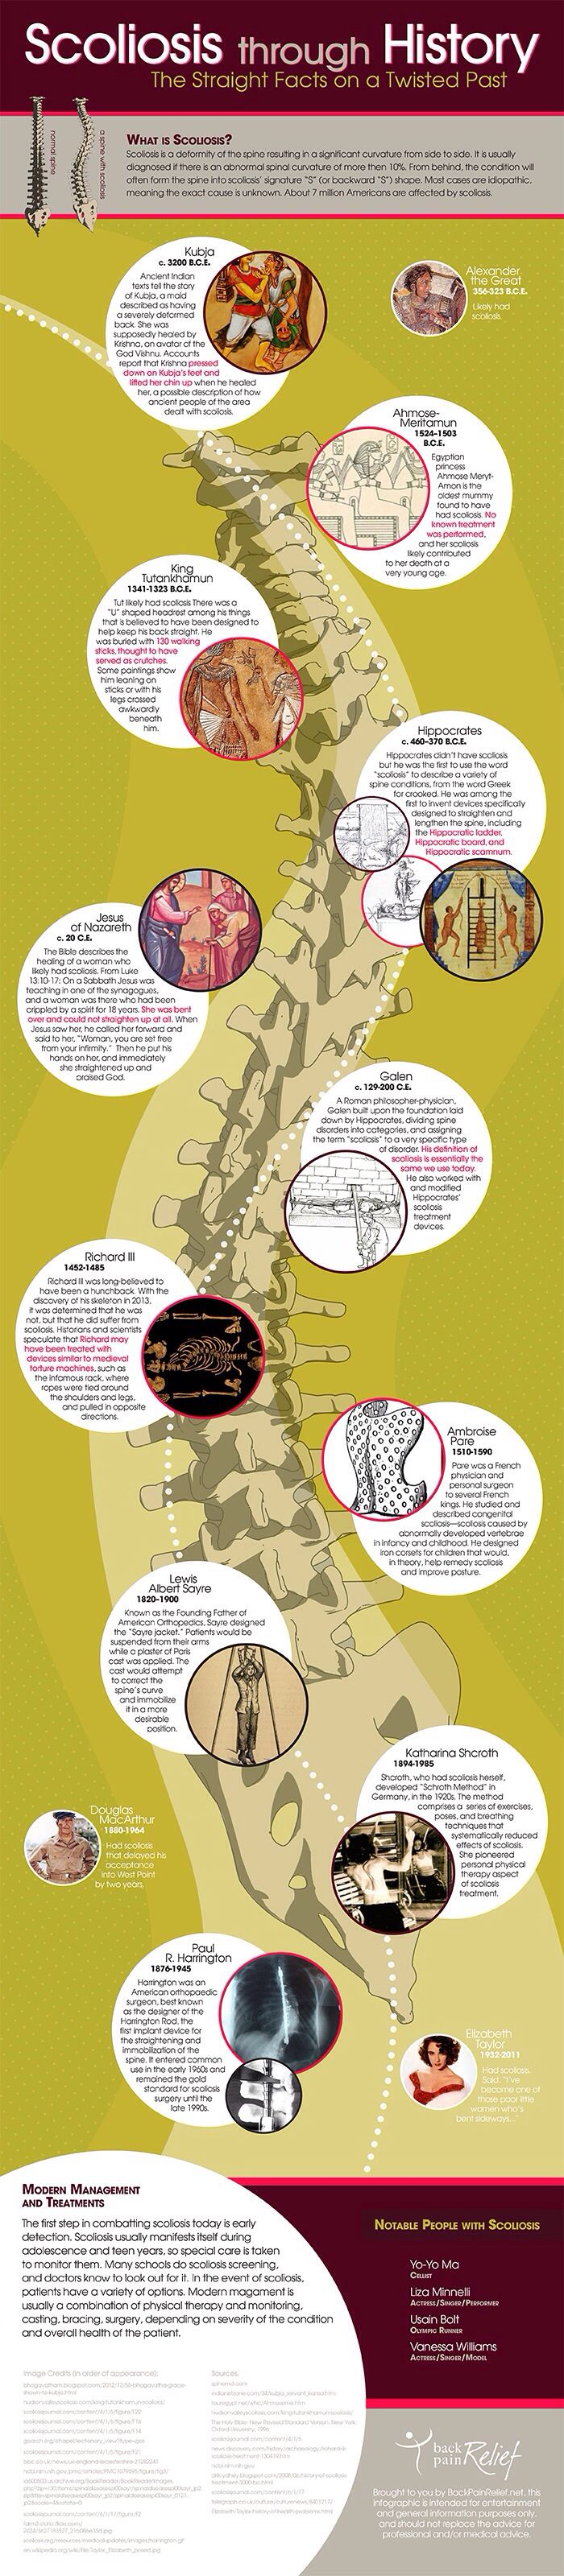 Scoliosis through history